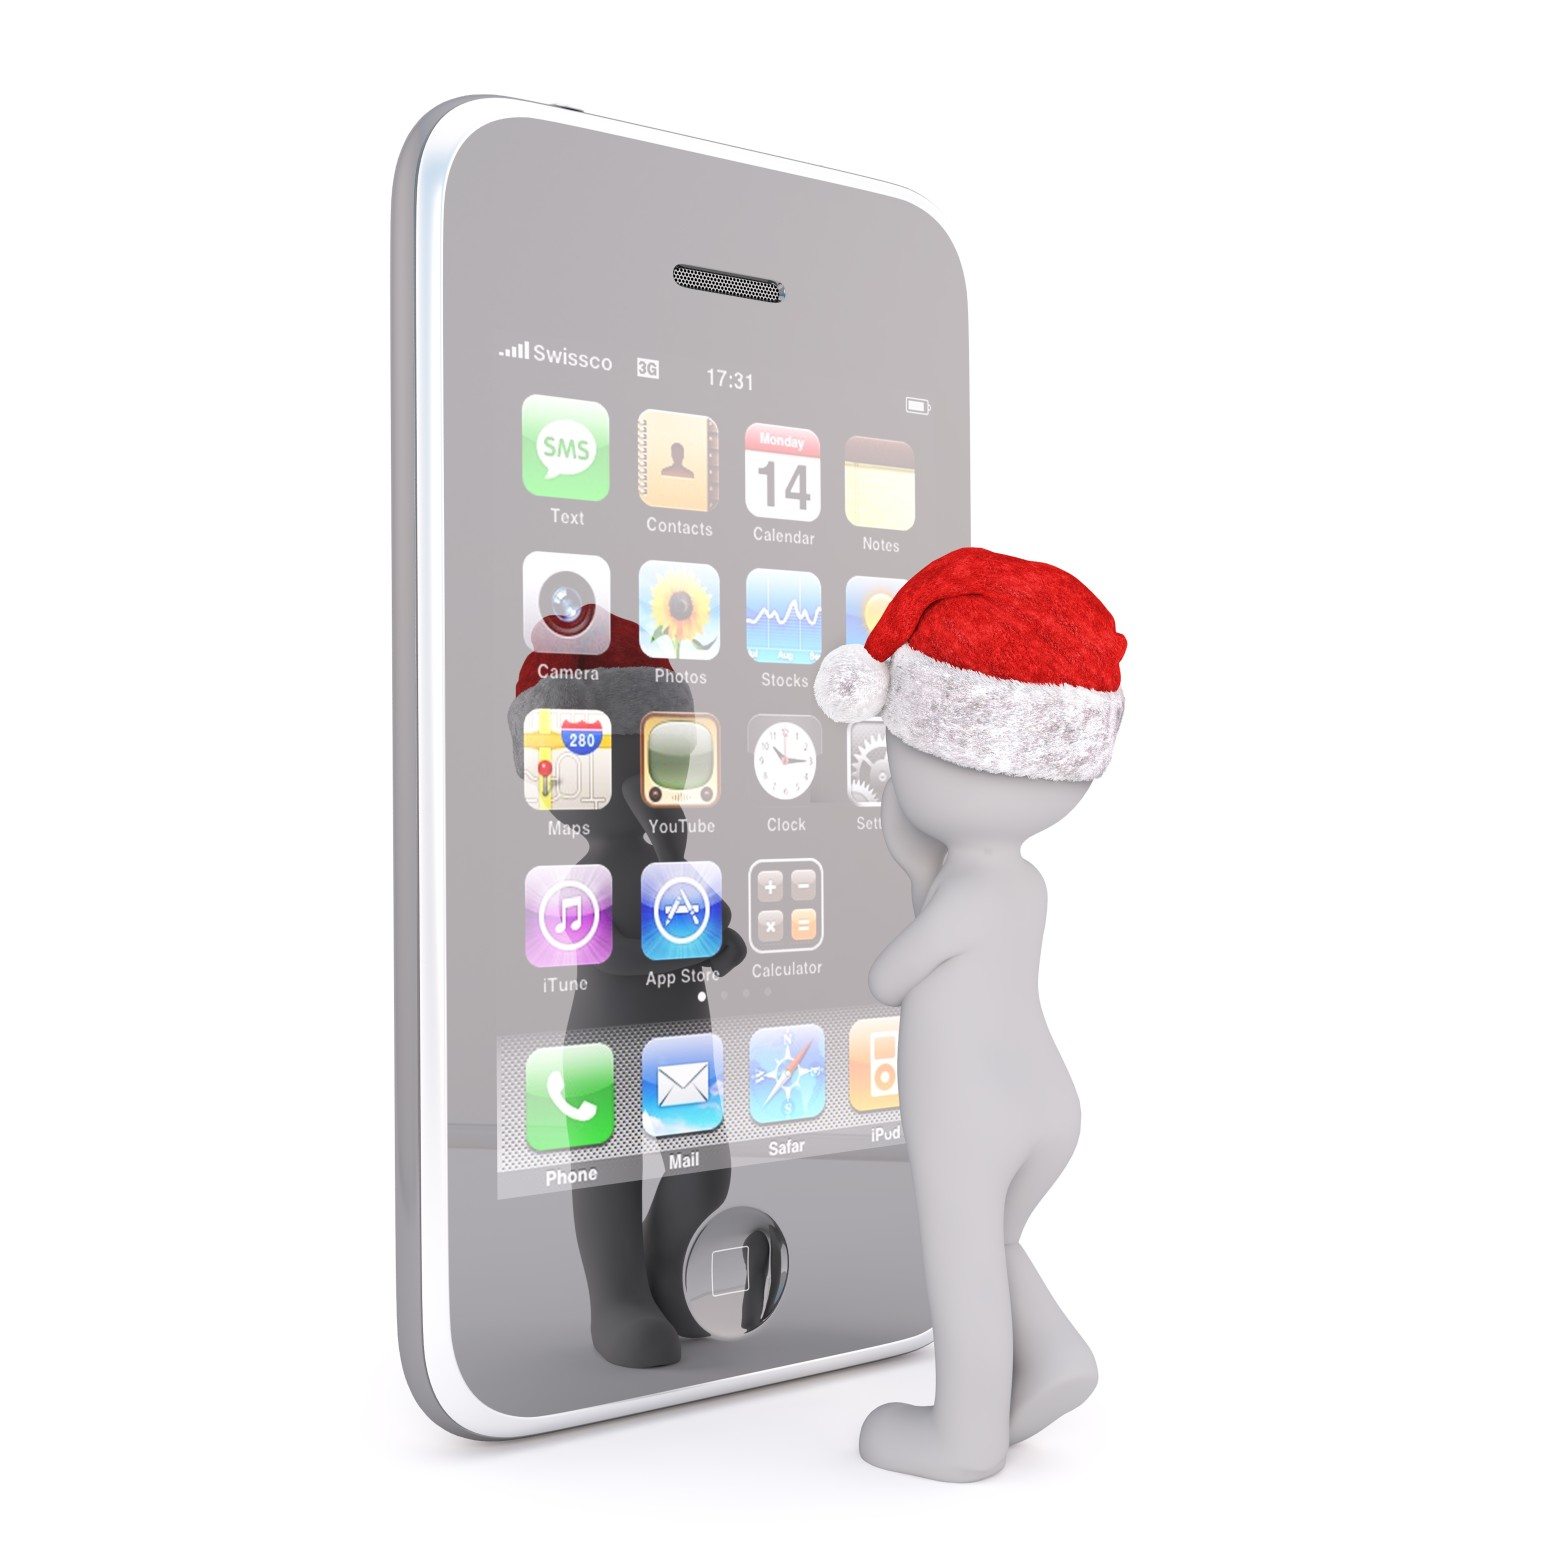 Bonhomme blanc 3d noel images gratuites images gratuites for Application dessin 3d